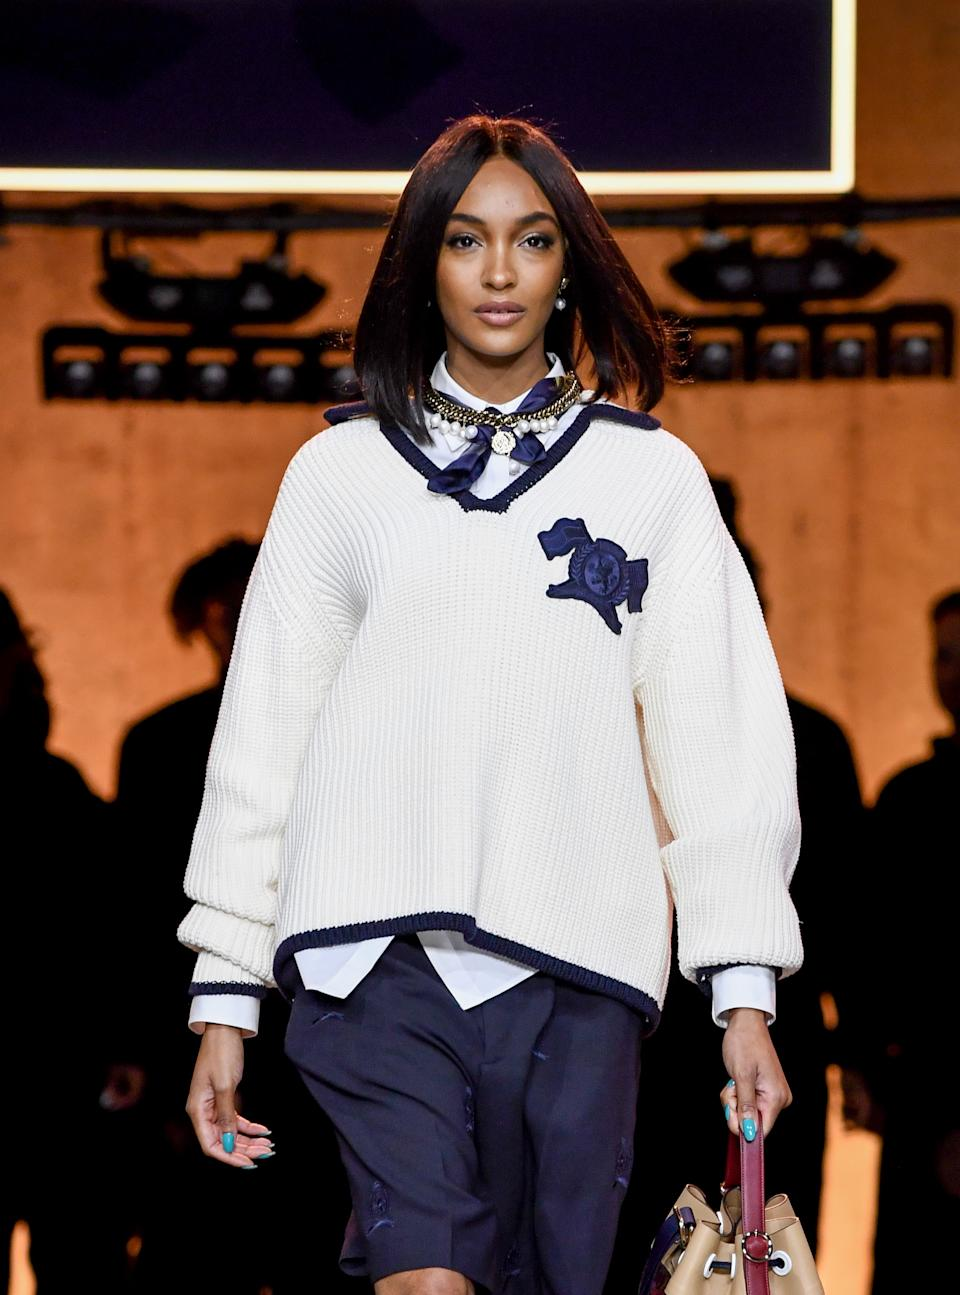 Jourdan Dunn walks the runway at the Tommy Hilfiger show during London Fashion Week. (Getty Images)